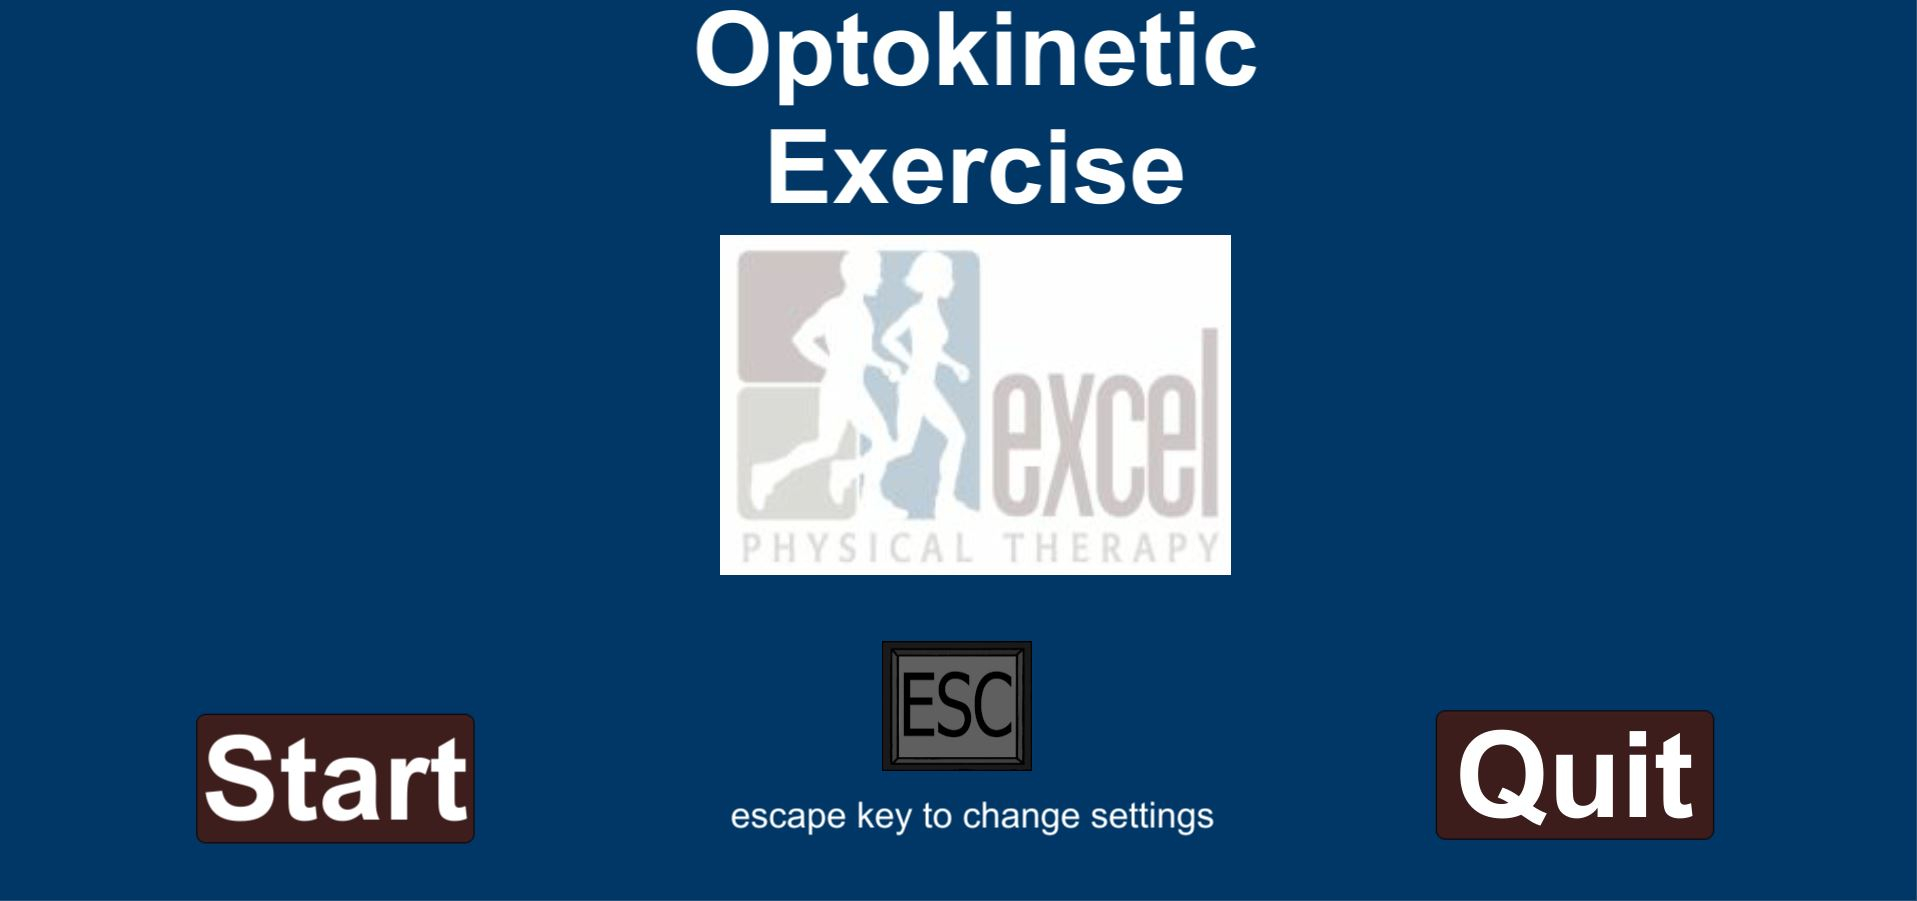 Optokinetic Exercise